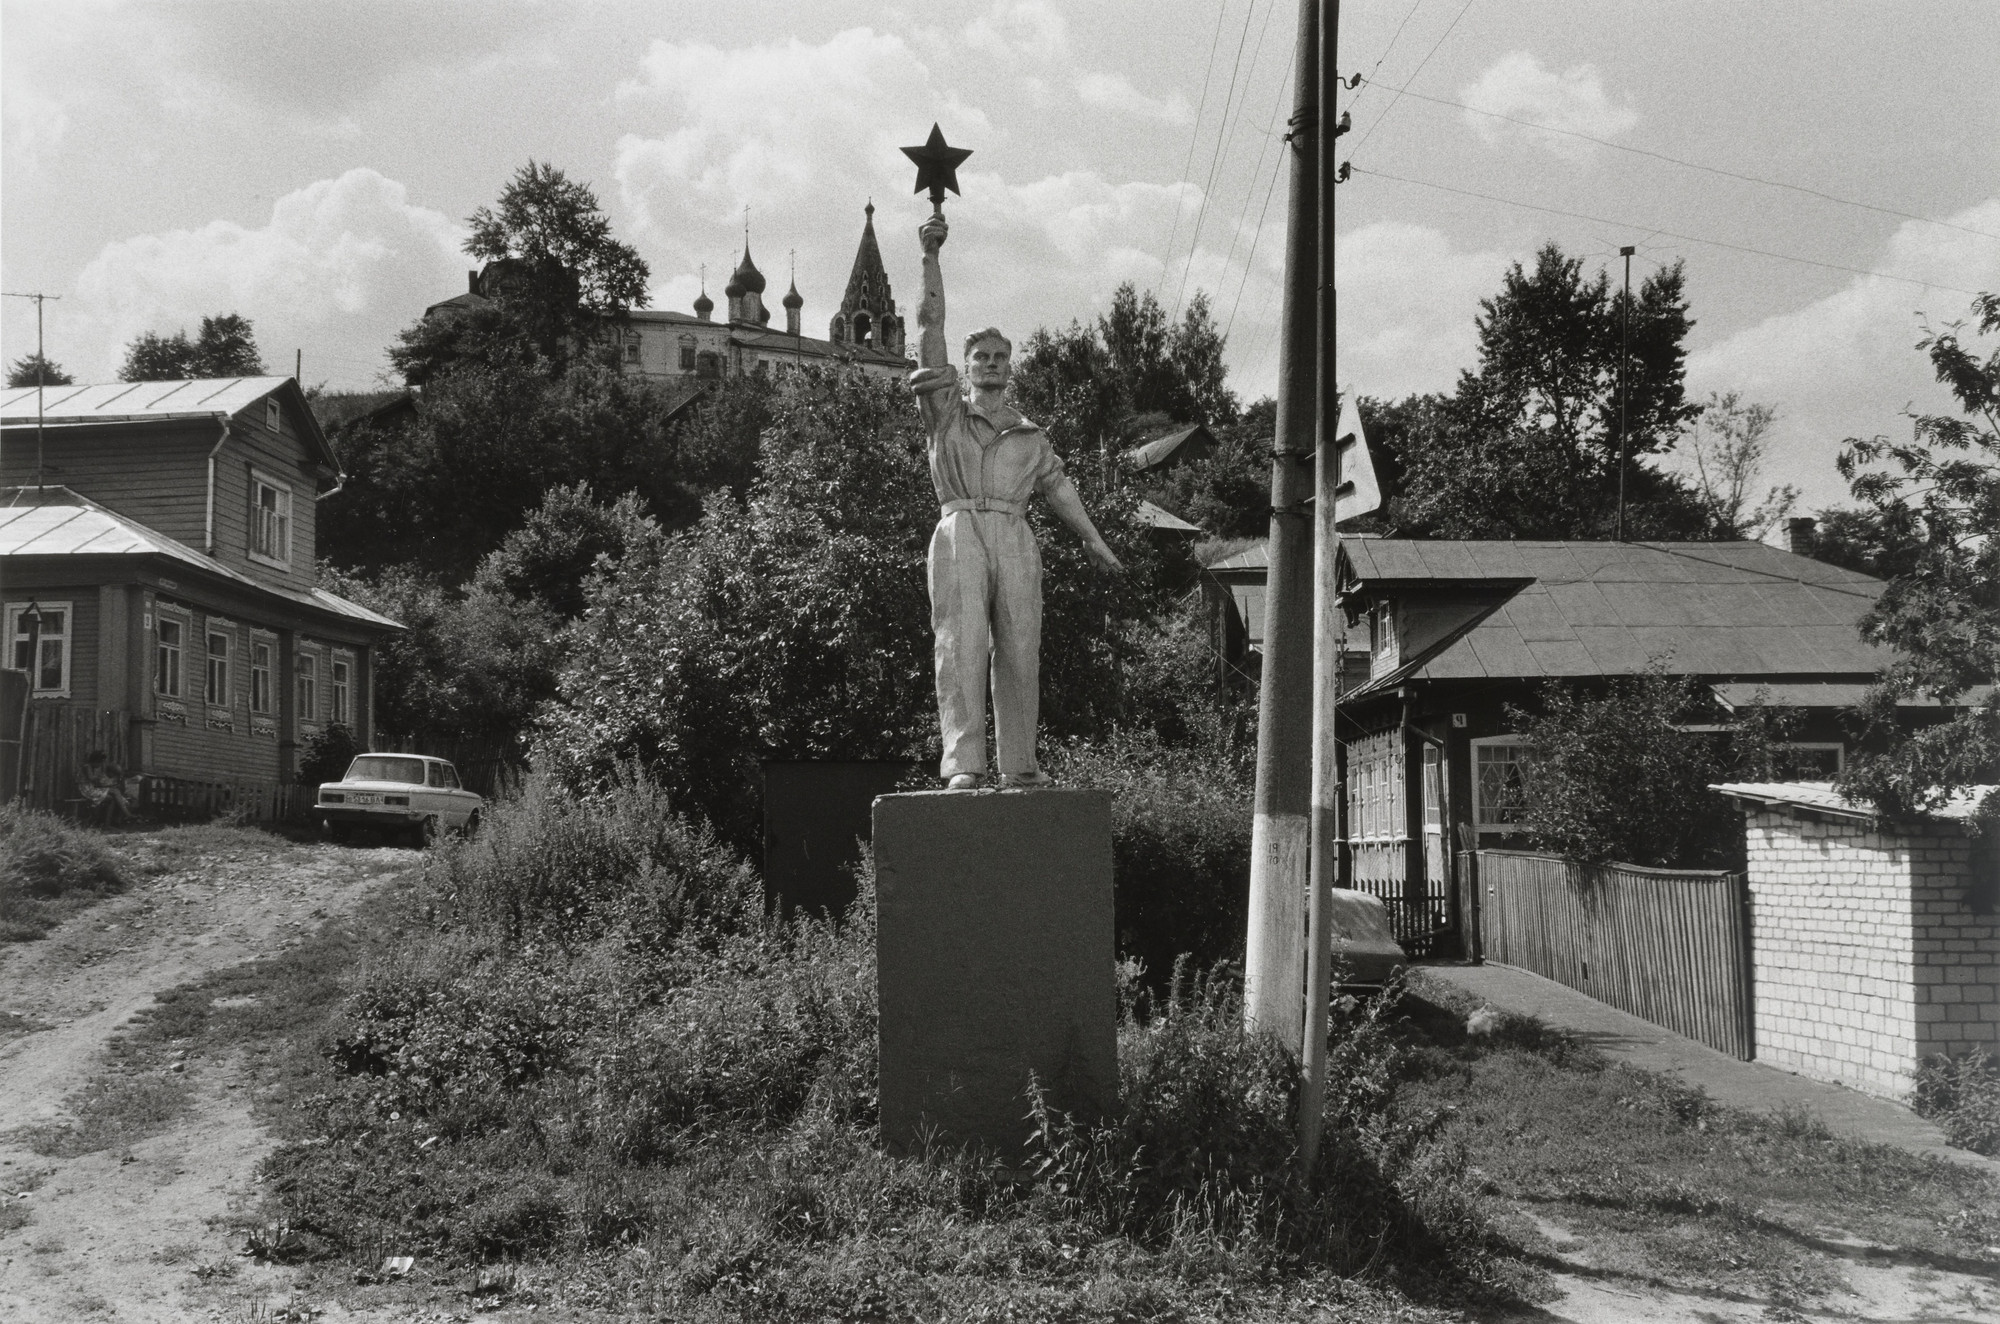 Igor Moukhin. Gorohovets, the Monument of the Worker. 1992